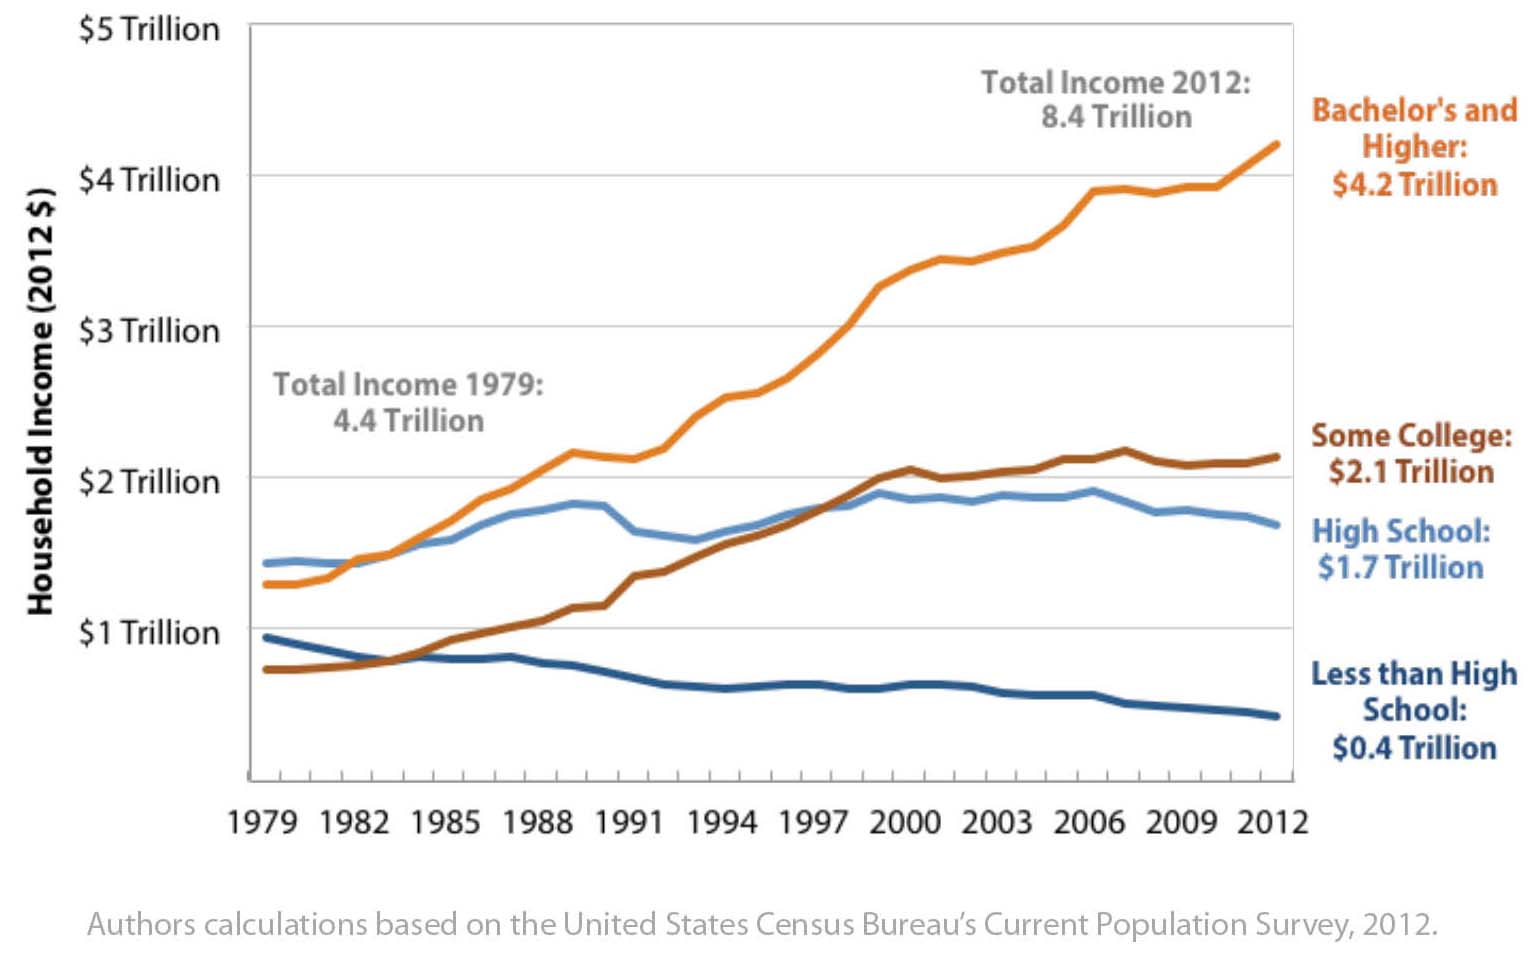 Aggregate Household Income by Educational Attainment